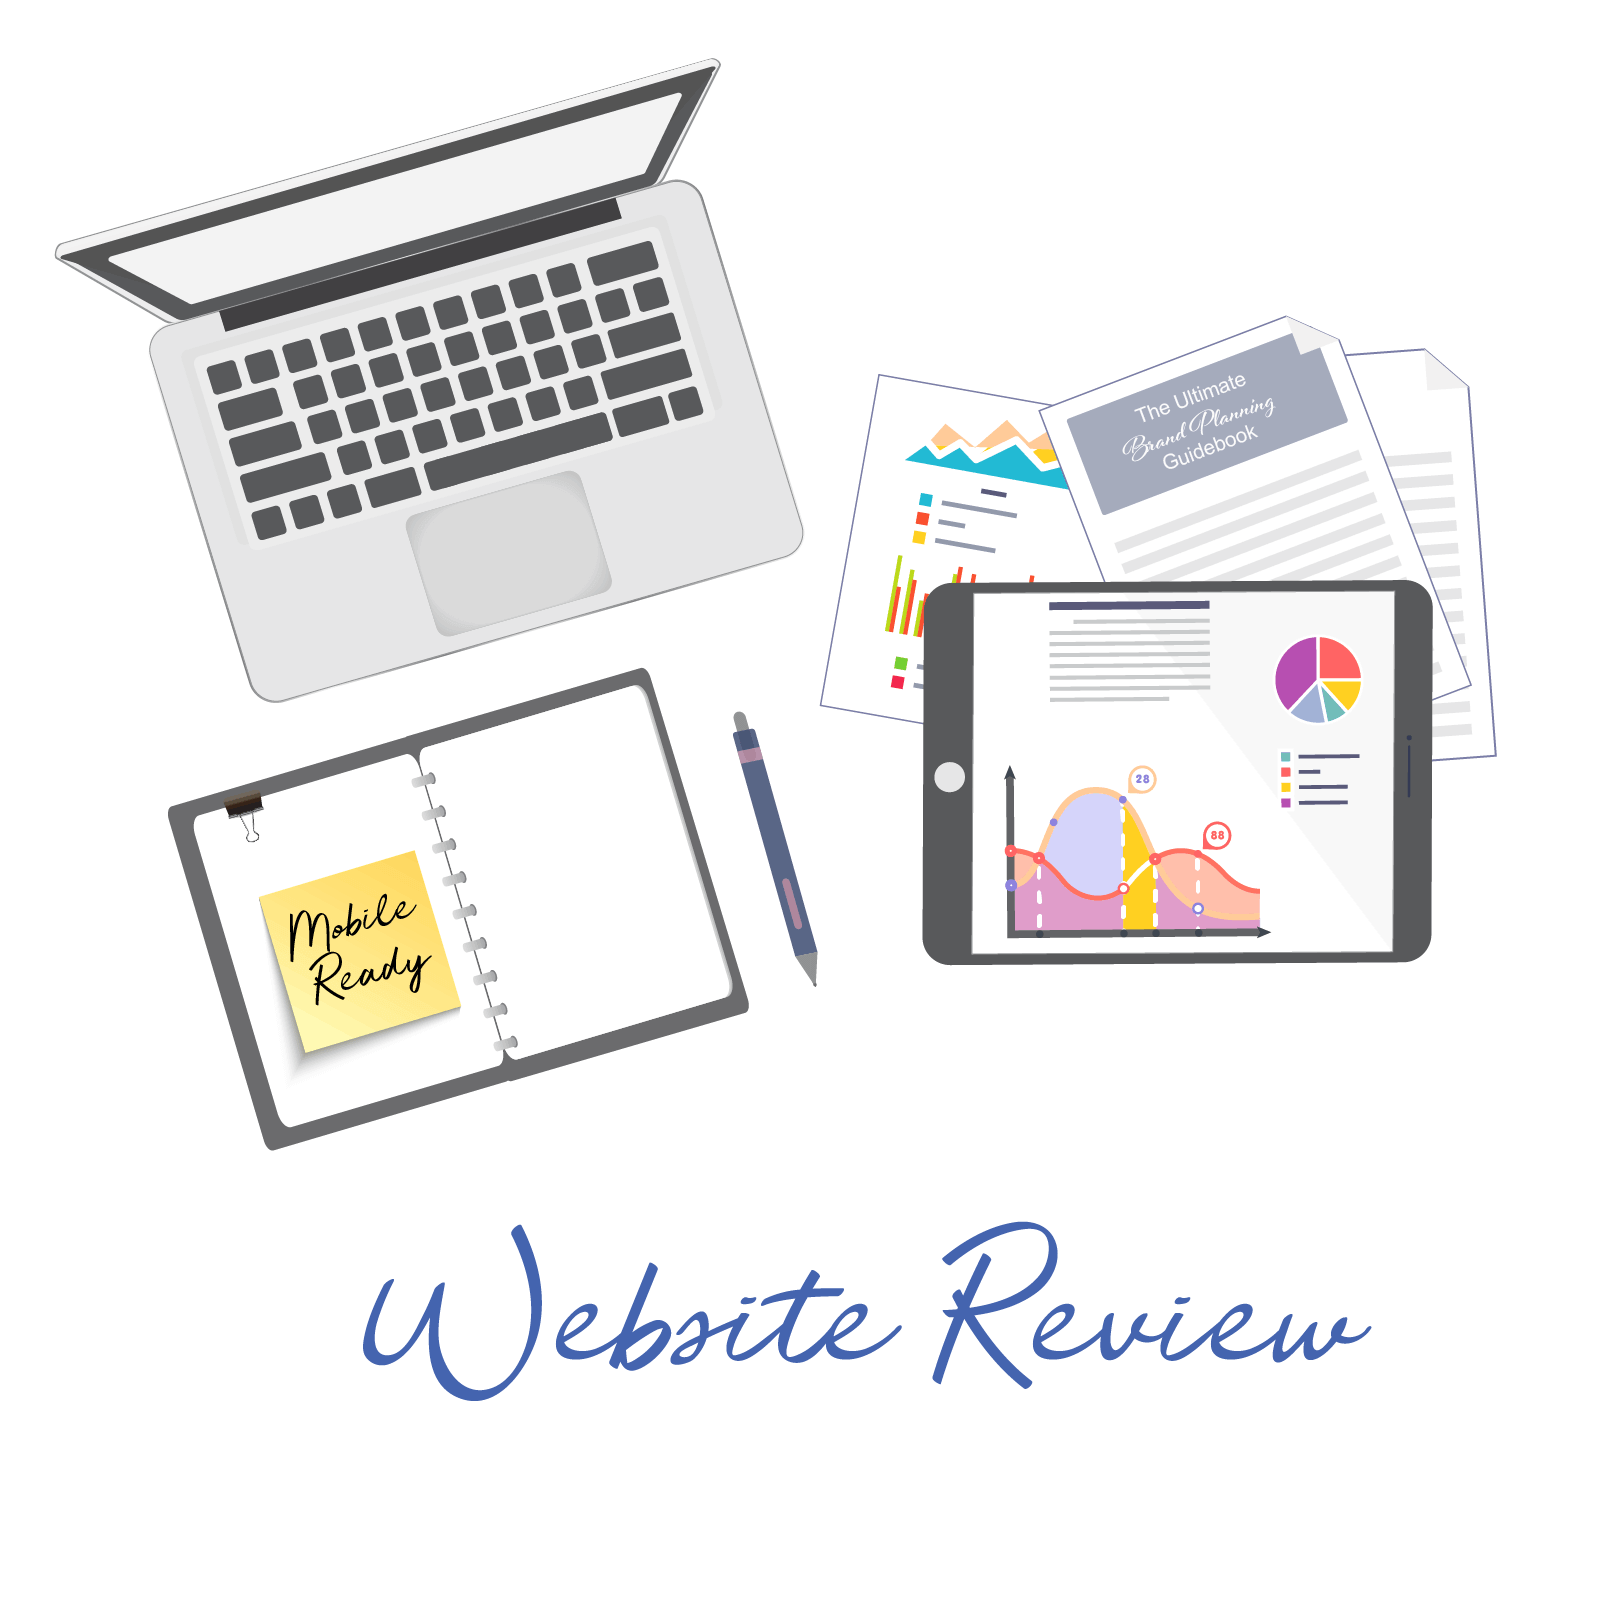 Mini-Website Review